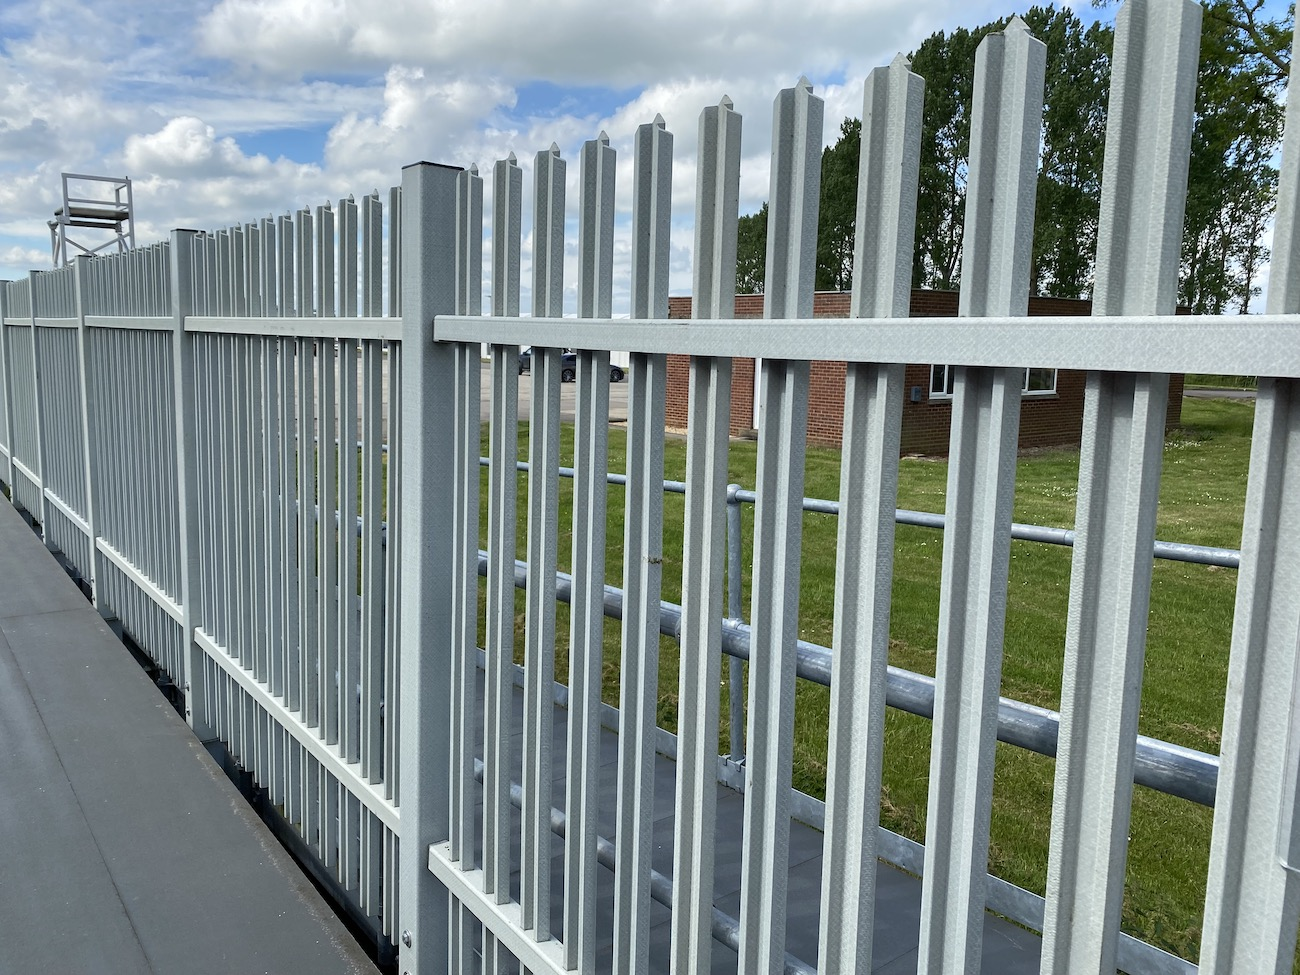 TouchSAFE composite fencing